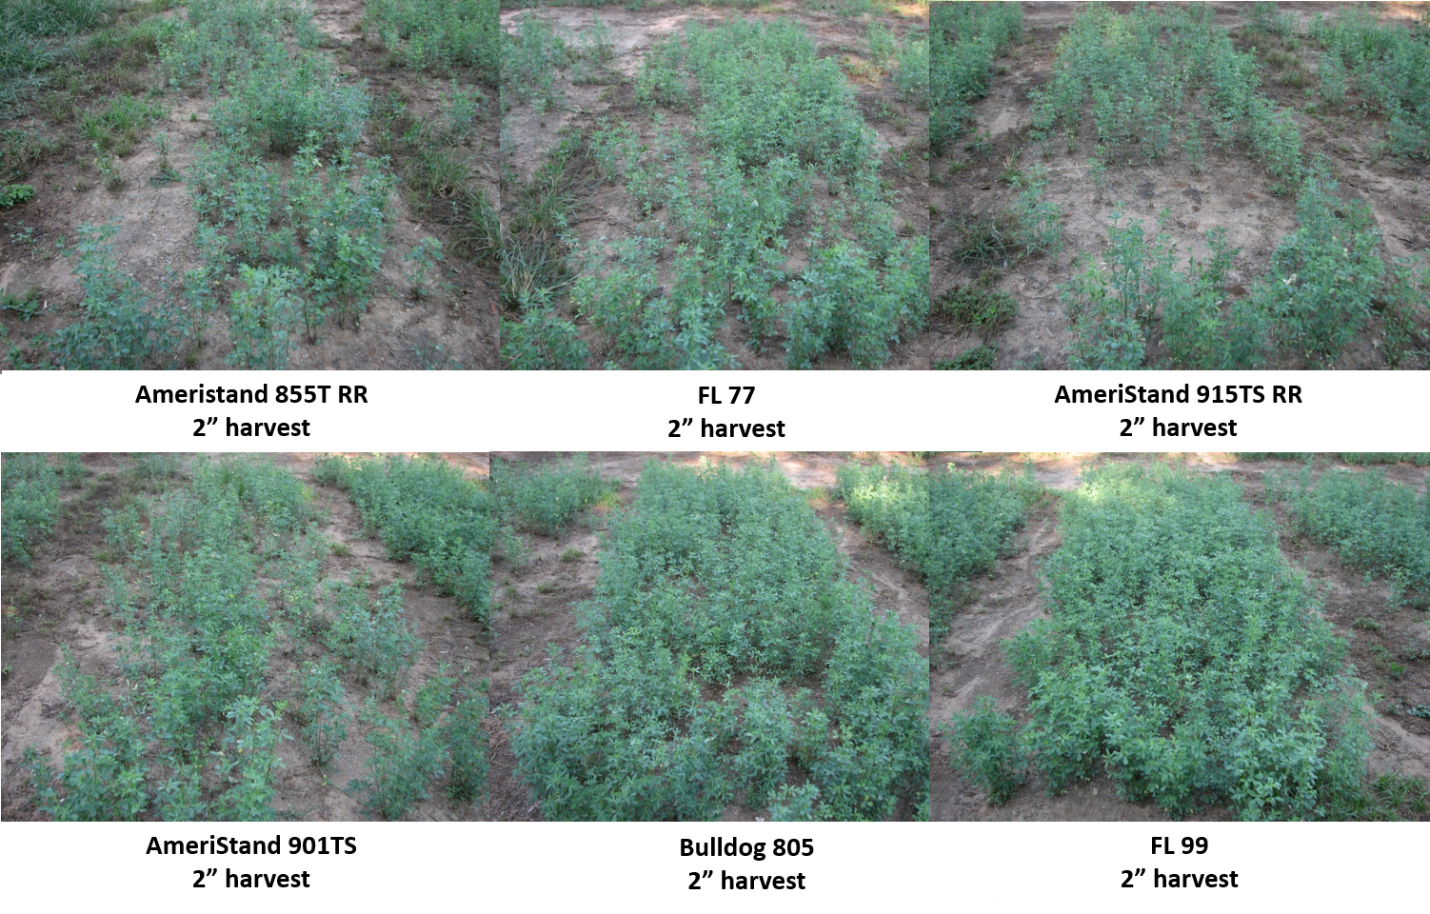 Figure 3. Alfalfa varieties after two years of harvests at UF/IFAS – NFREC, Marianna, FL. Photo credit: Jose Dubeux